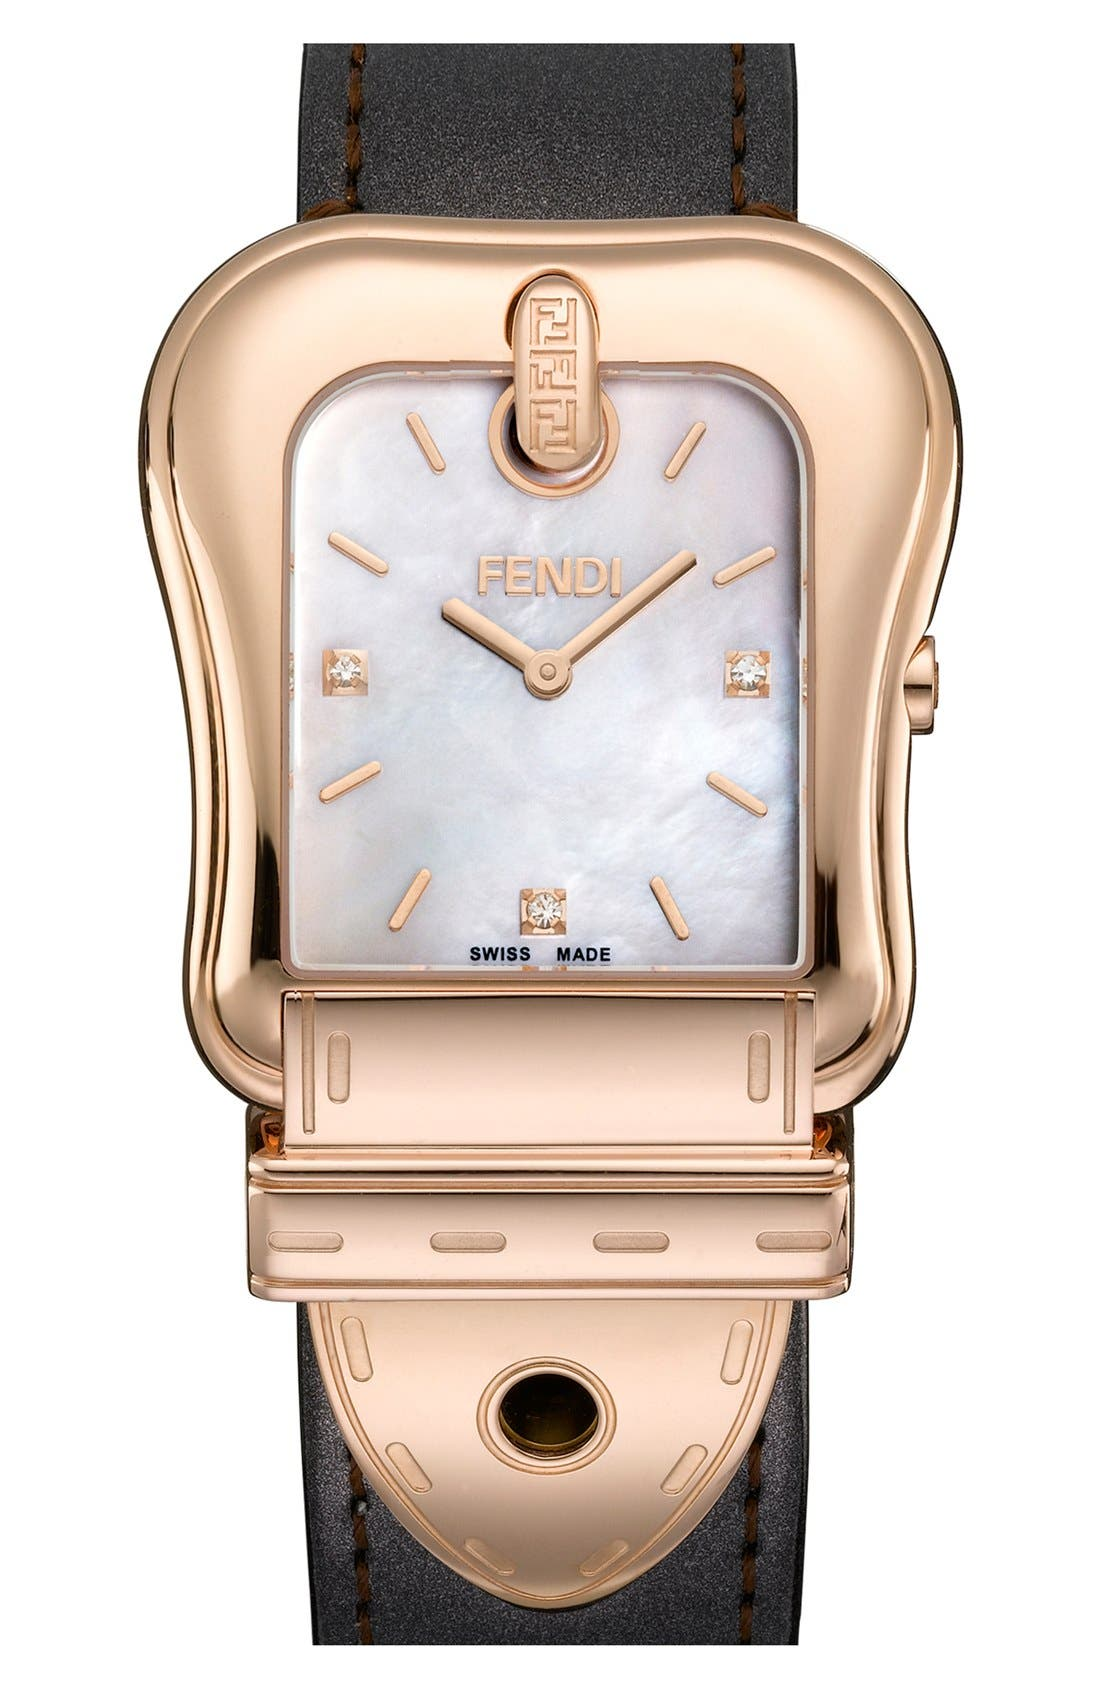 Alternate Image 1 Selected - Fendi 'B. Fendi' Diamond Marker Watch, 33mm x 43mm